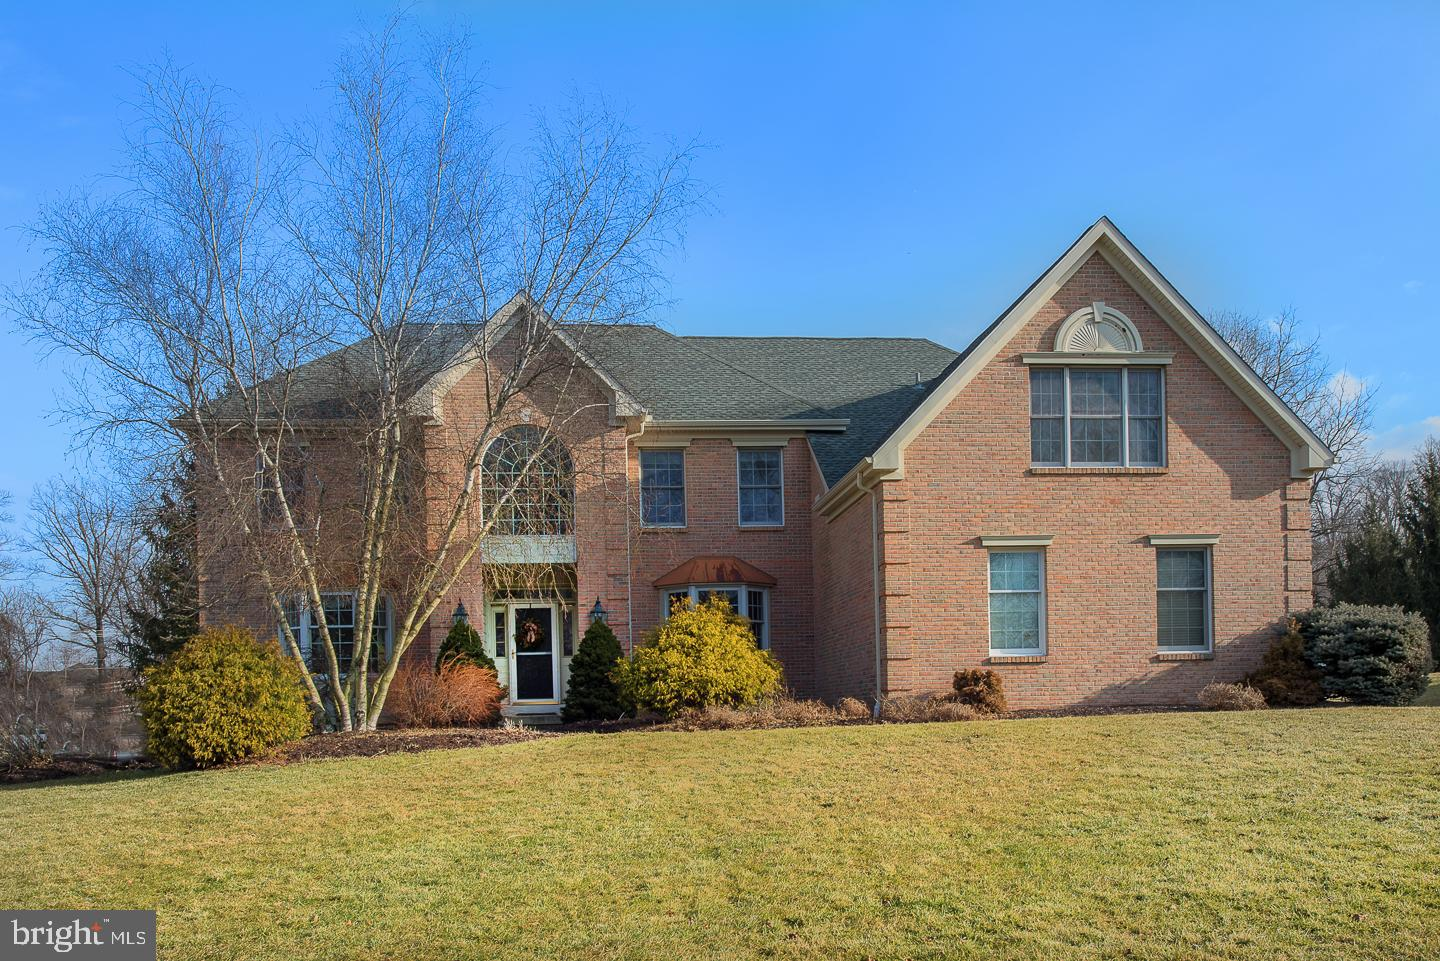 1706 CLOCK TOWER DRIVE, WEST CHESTER, PA 19380